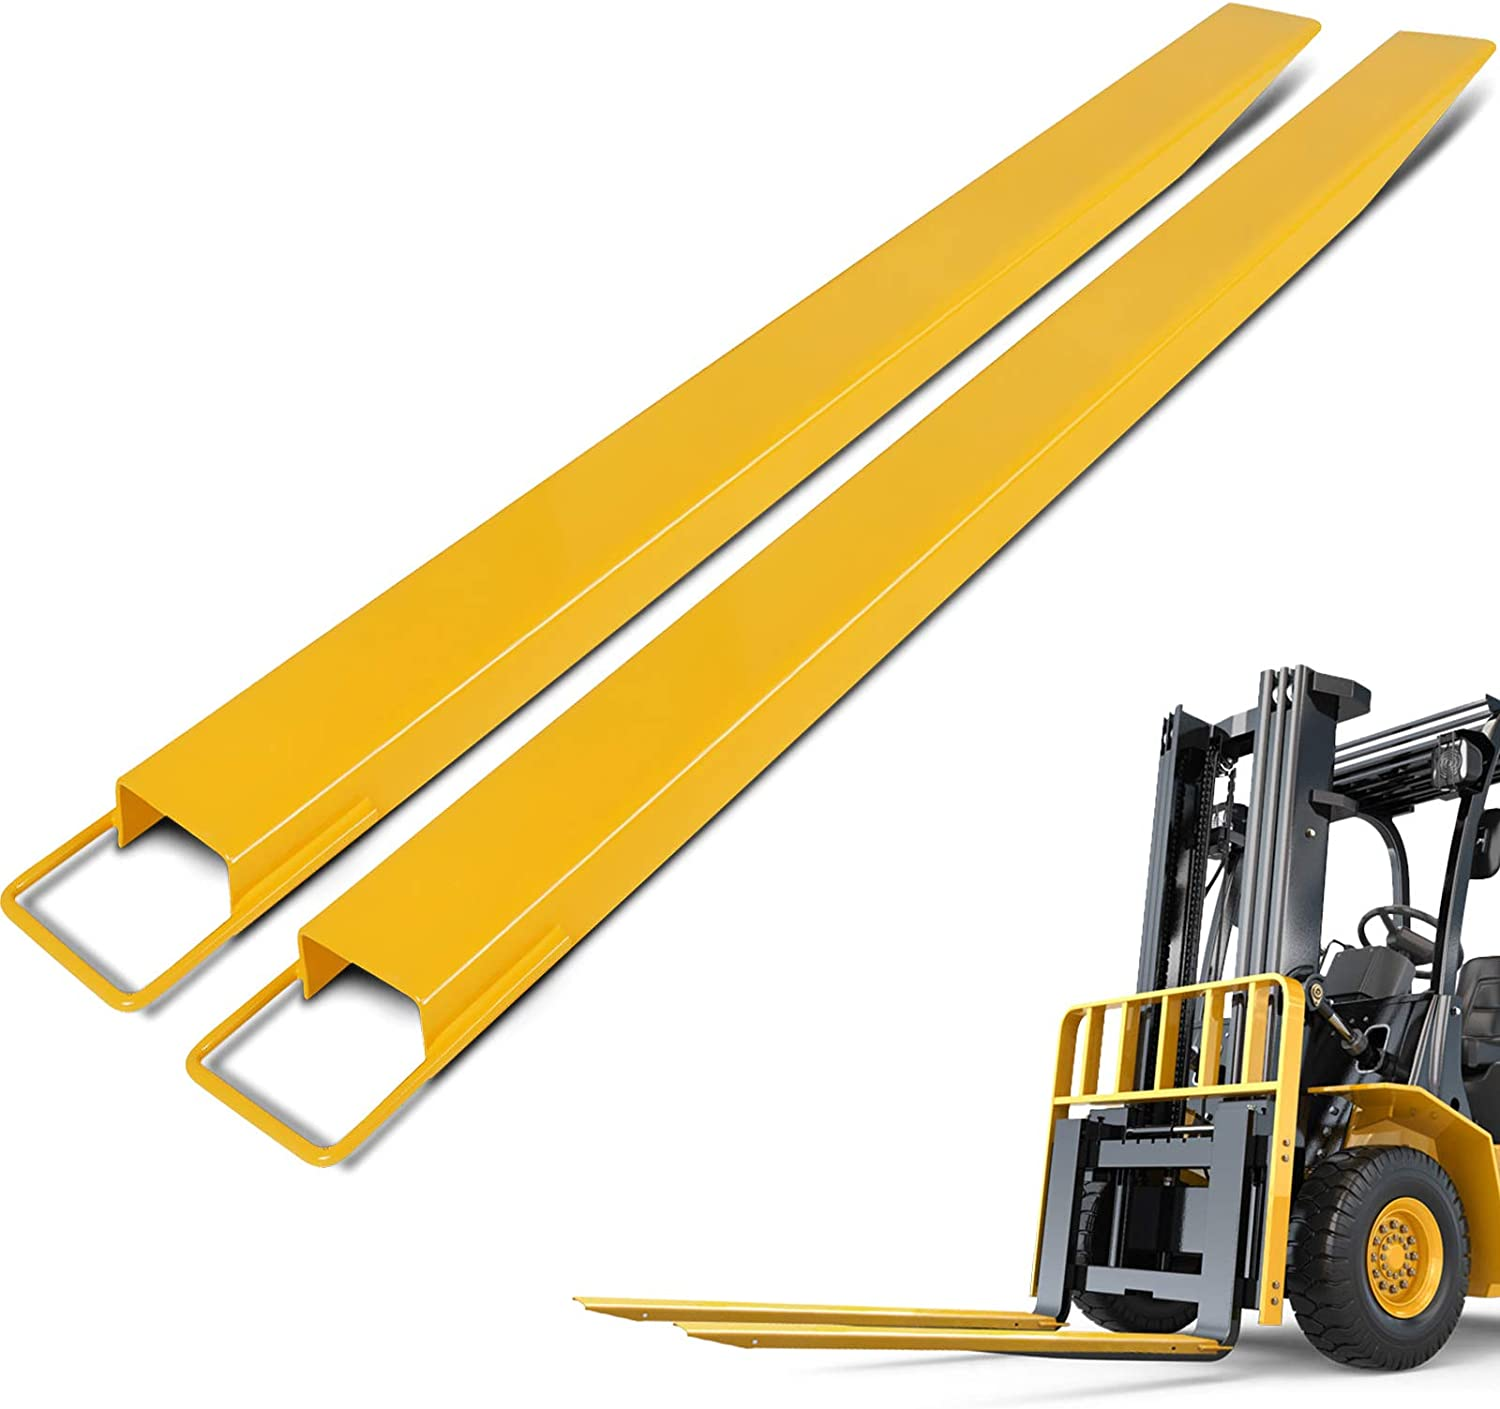 Amazon Com Bestequip Fork Extensions 84inch Length Pallet Fork Extensions 4 5inch Width Forklift Extensions Heavy Duty Steel Pallet Forklift Extensions 1 Pair For Forklift Lift Truck Forklift Loaders Home Improvement